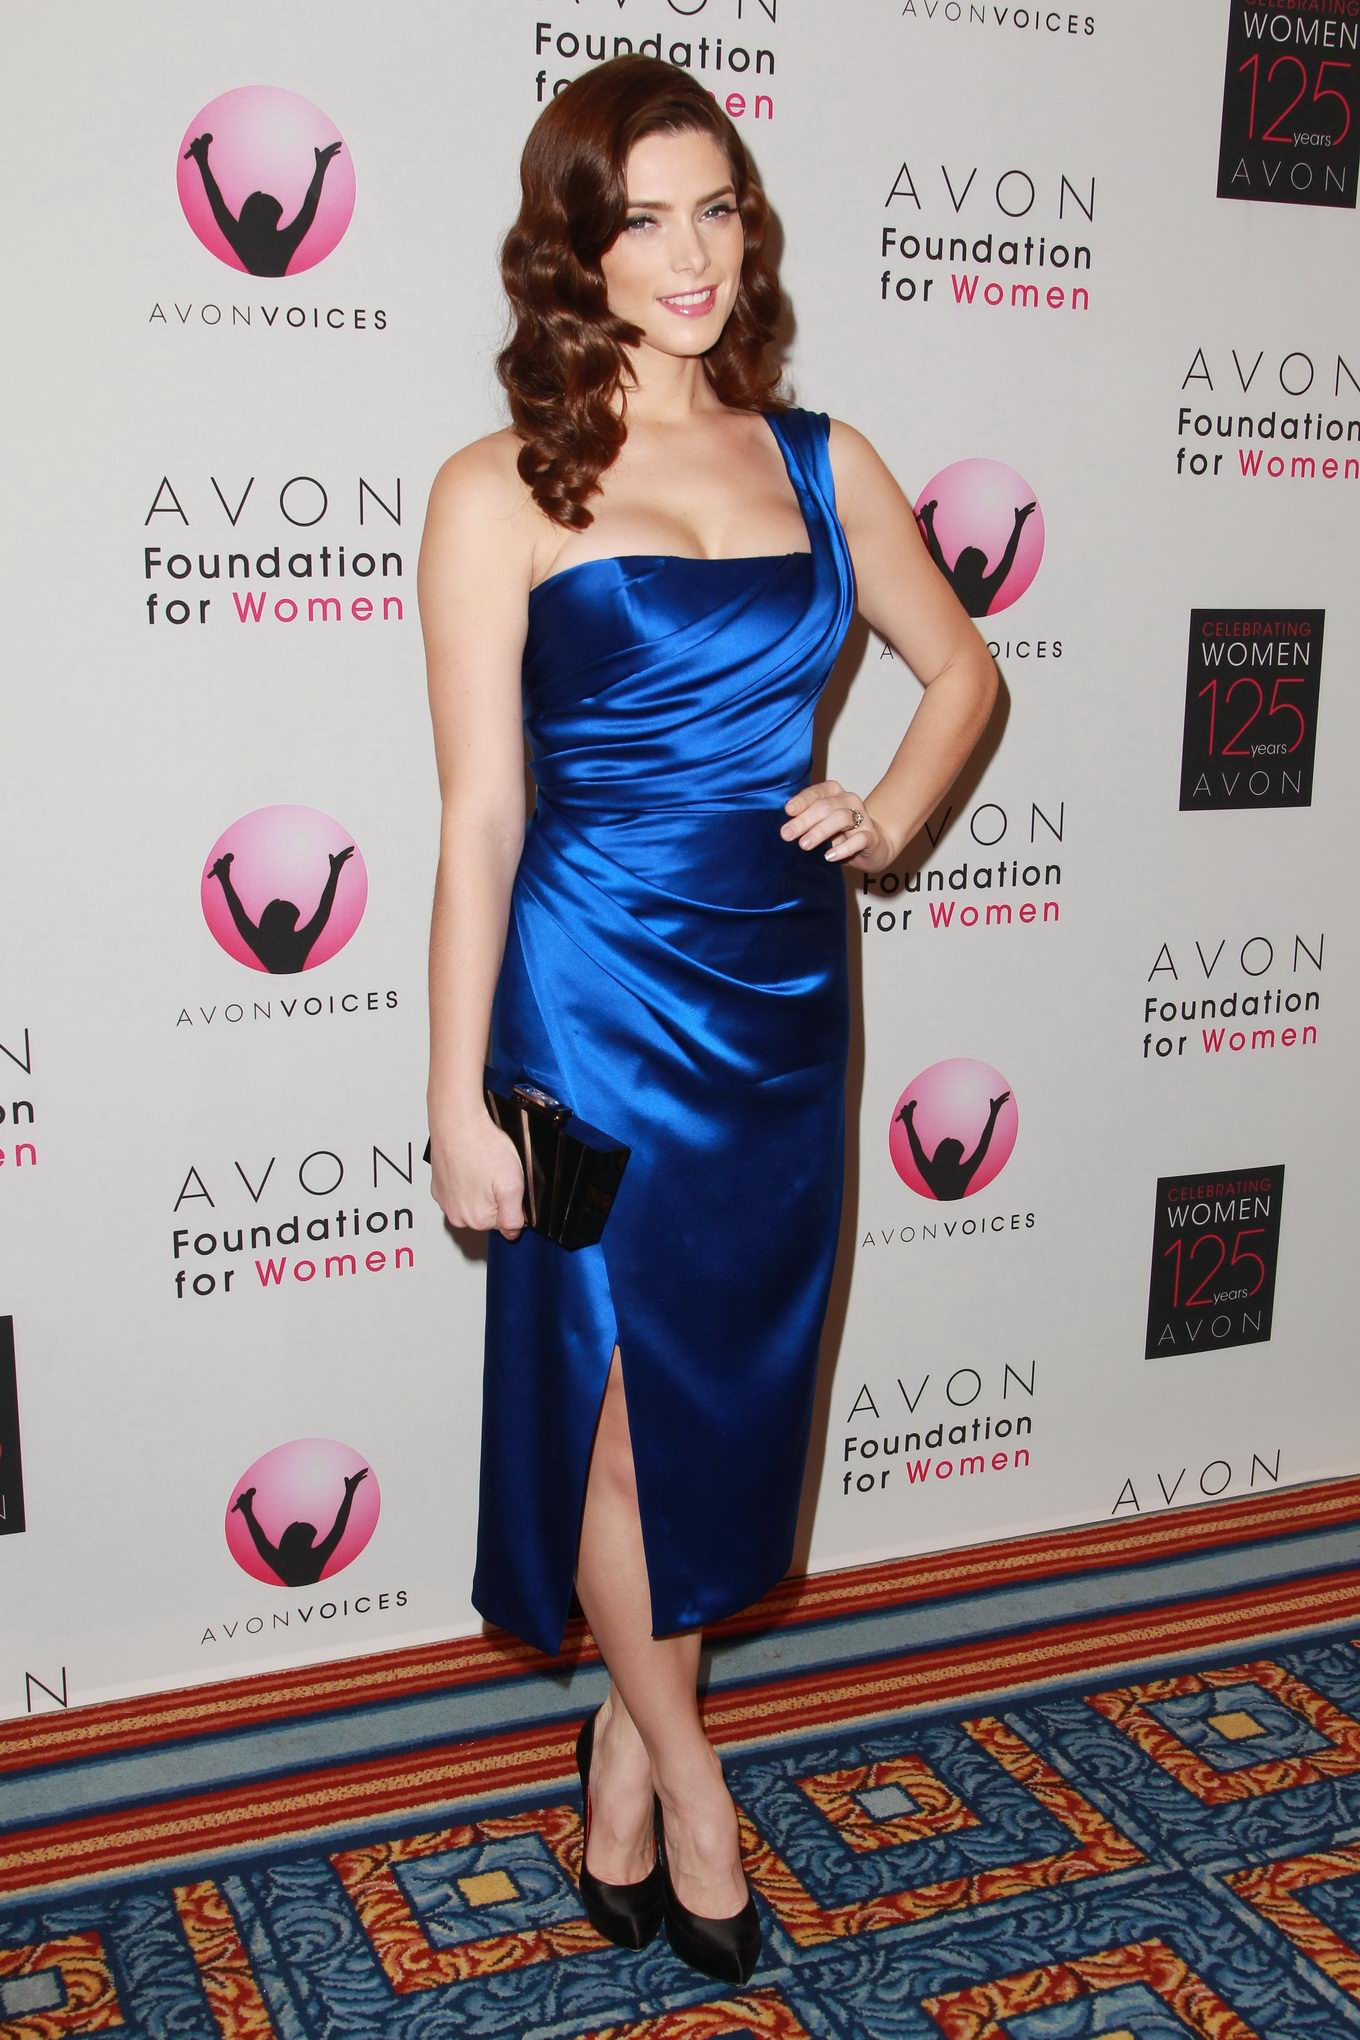 Ashley Greene showing cleavage in blue dress at the Global Voices for ...: www.celeb-for-free.com/pics/celeb2777/ashley_greene_xxx_freeones.html